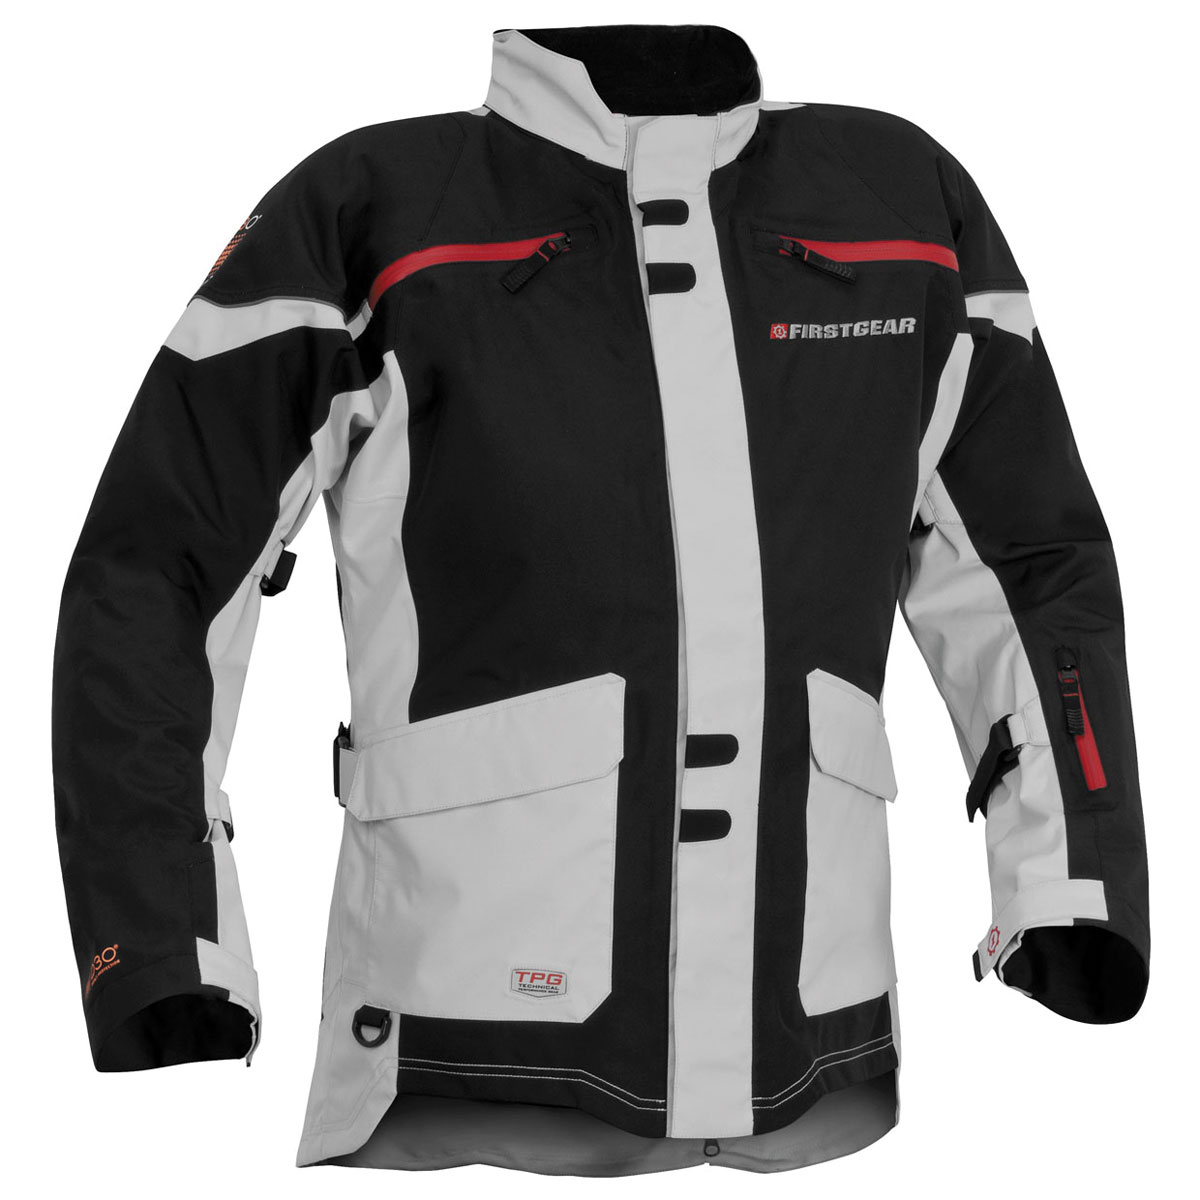 Firstgear Men's TPG Rainier Black/Silver Jacket